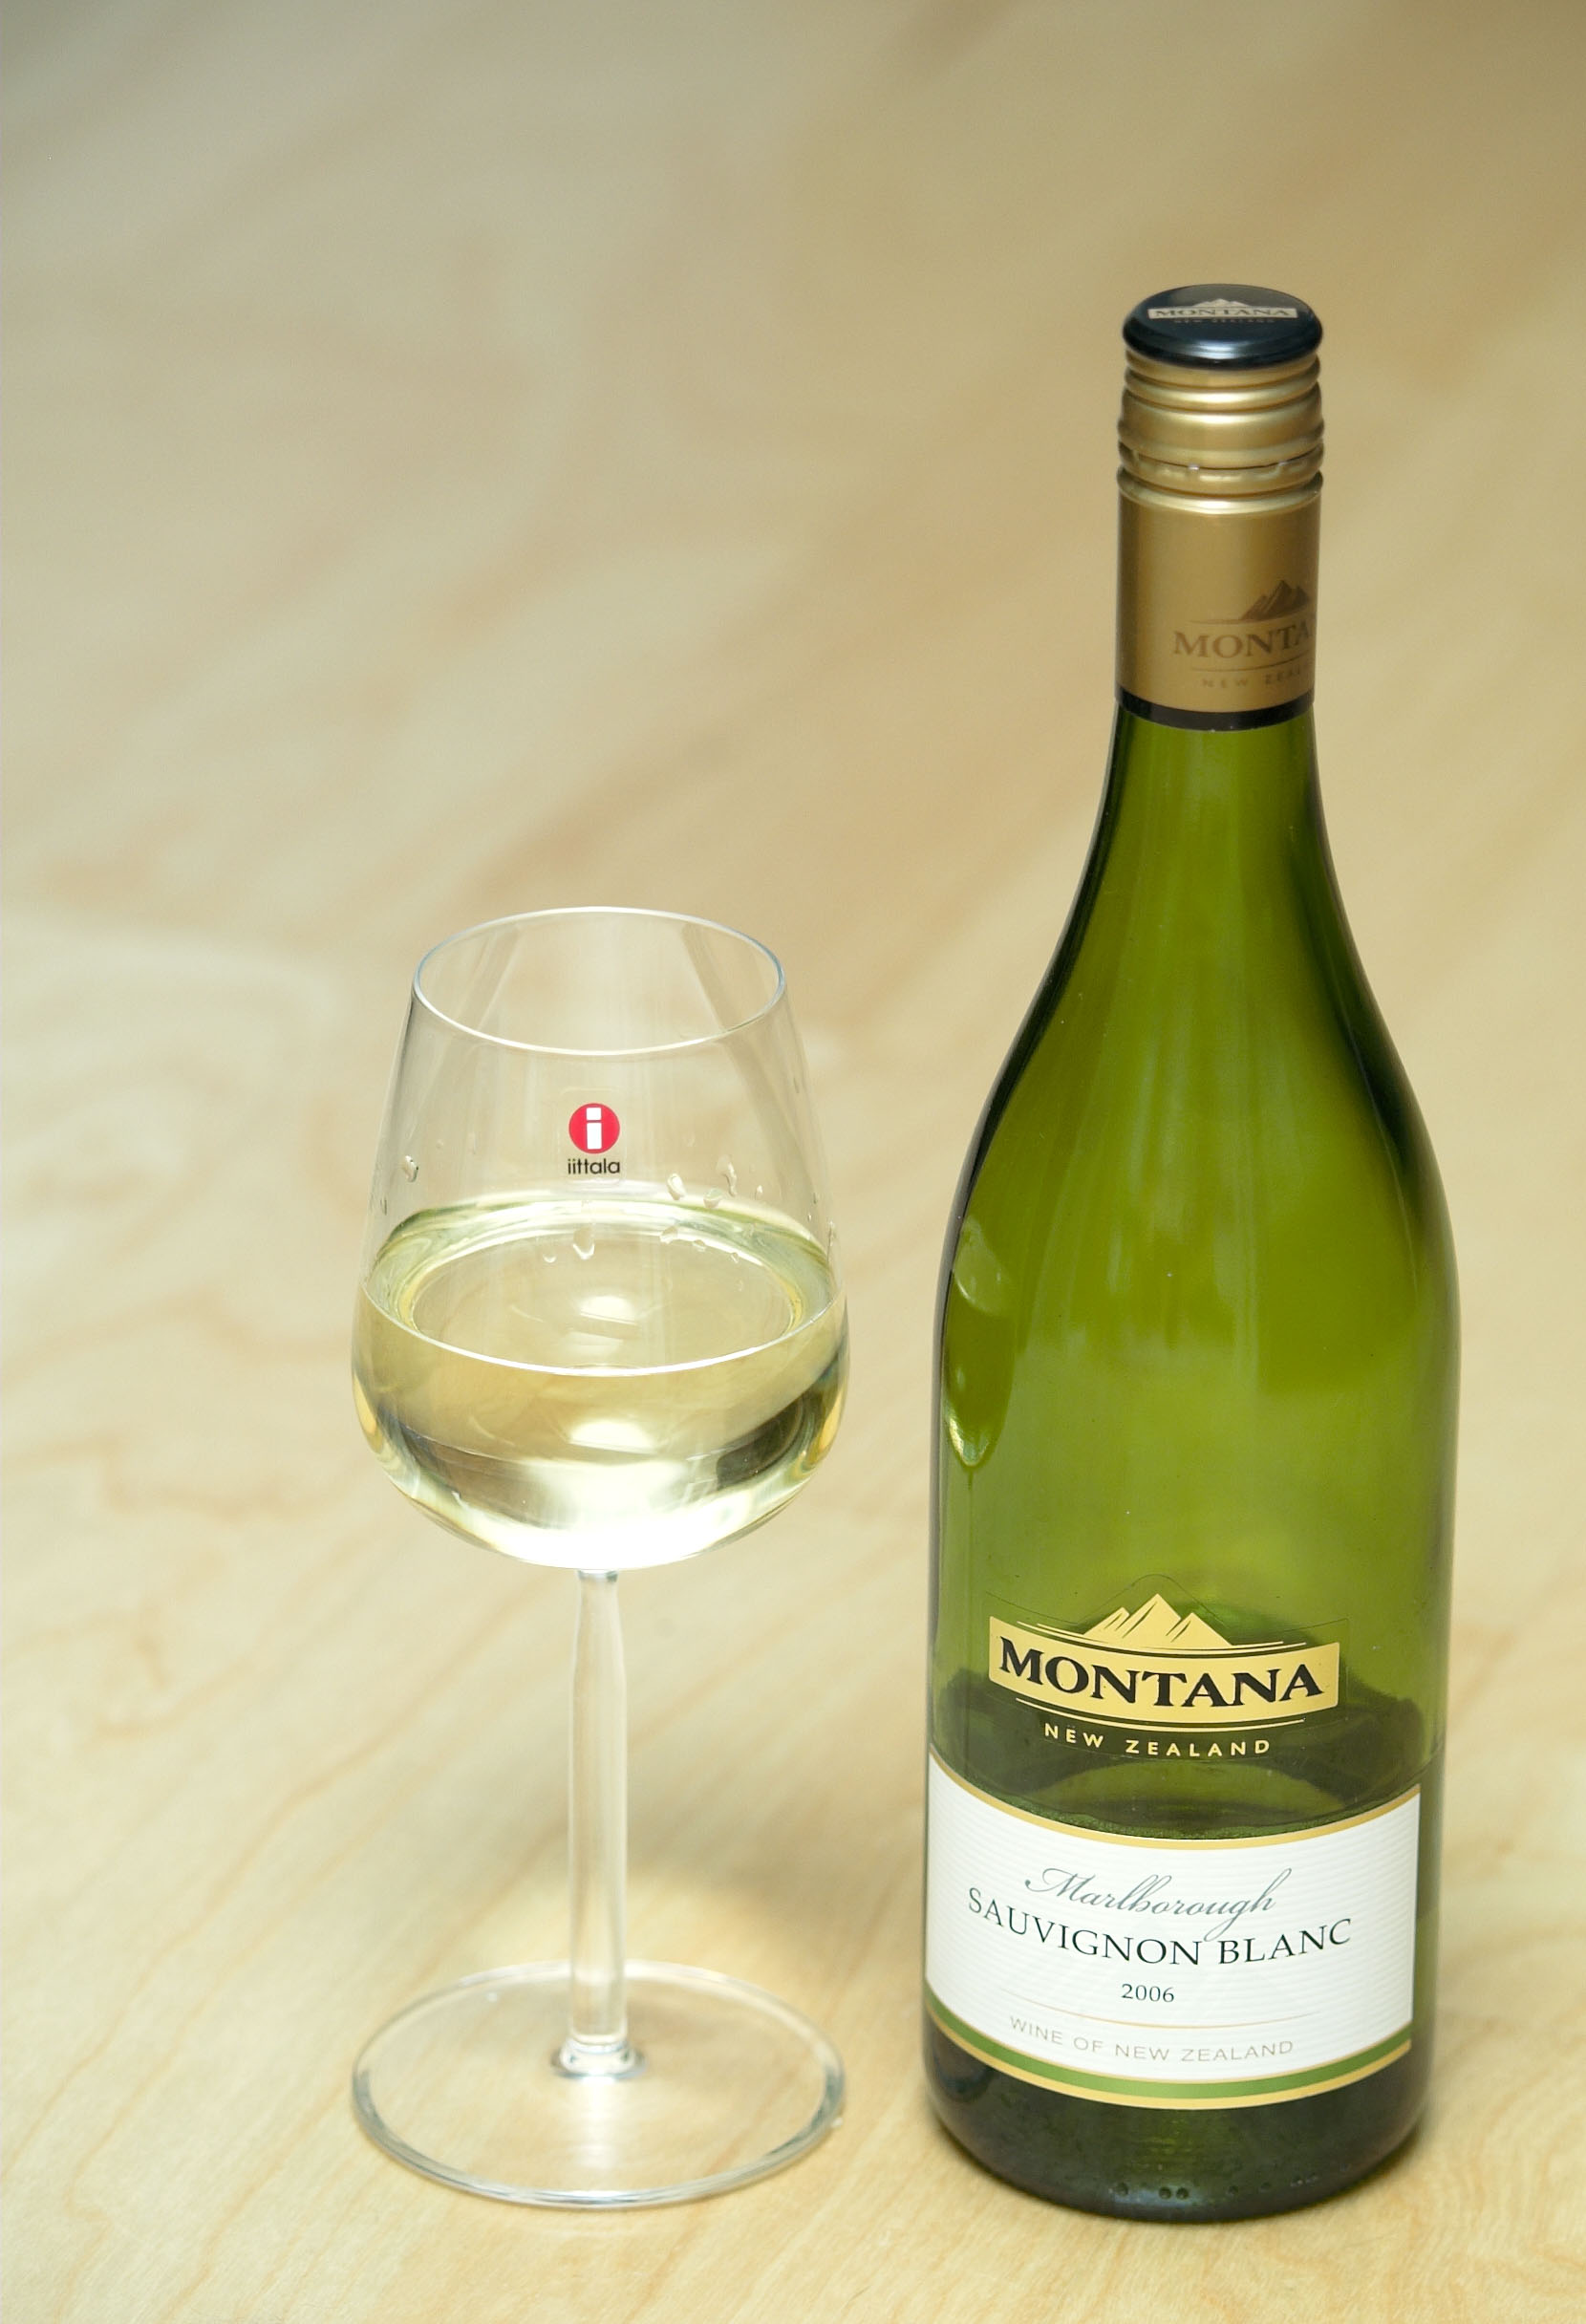 Iittala Weingläser Datei:montana Marlborough Sauvignon Blanc In Iittala Glass.jpg – Wikipedia